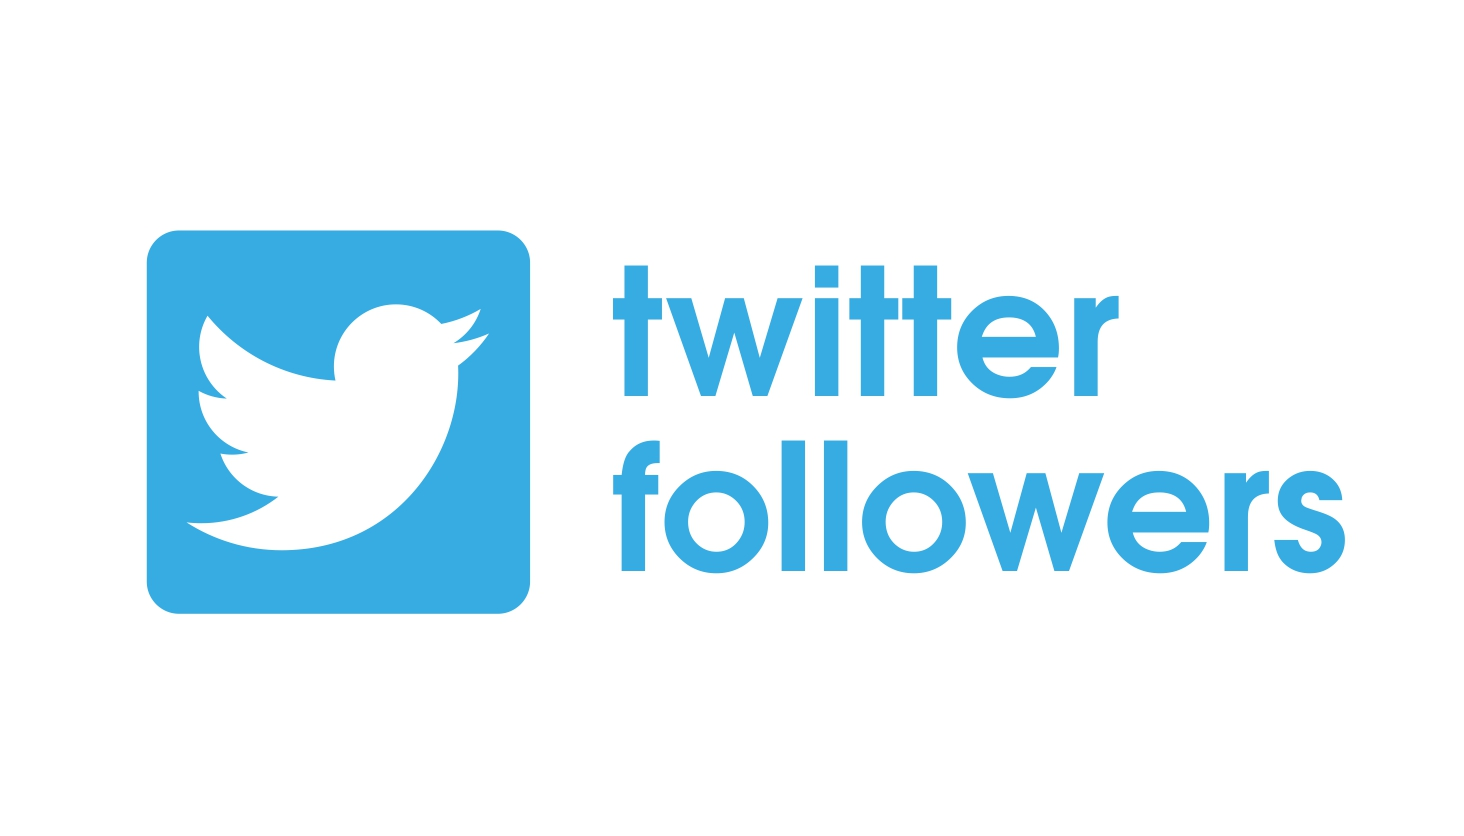 To acquire Twitter 5,000 followers pictures trends